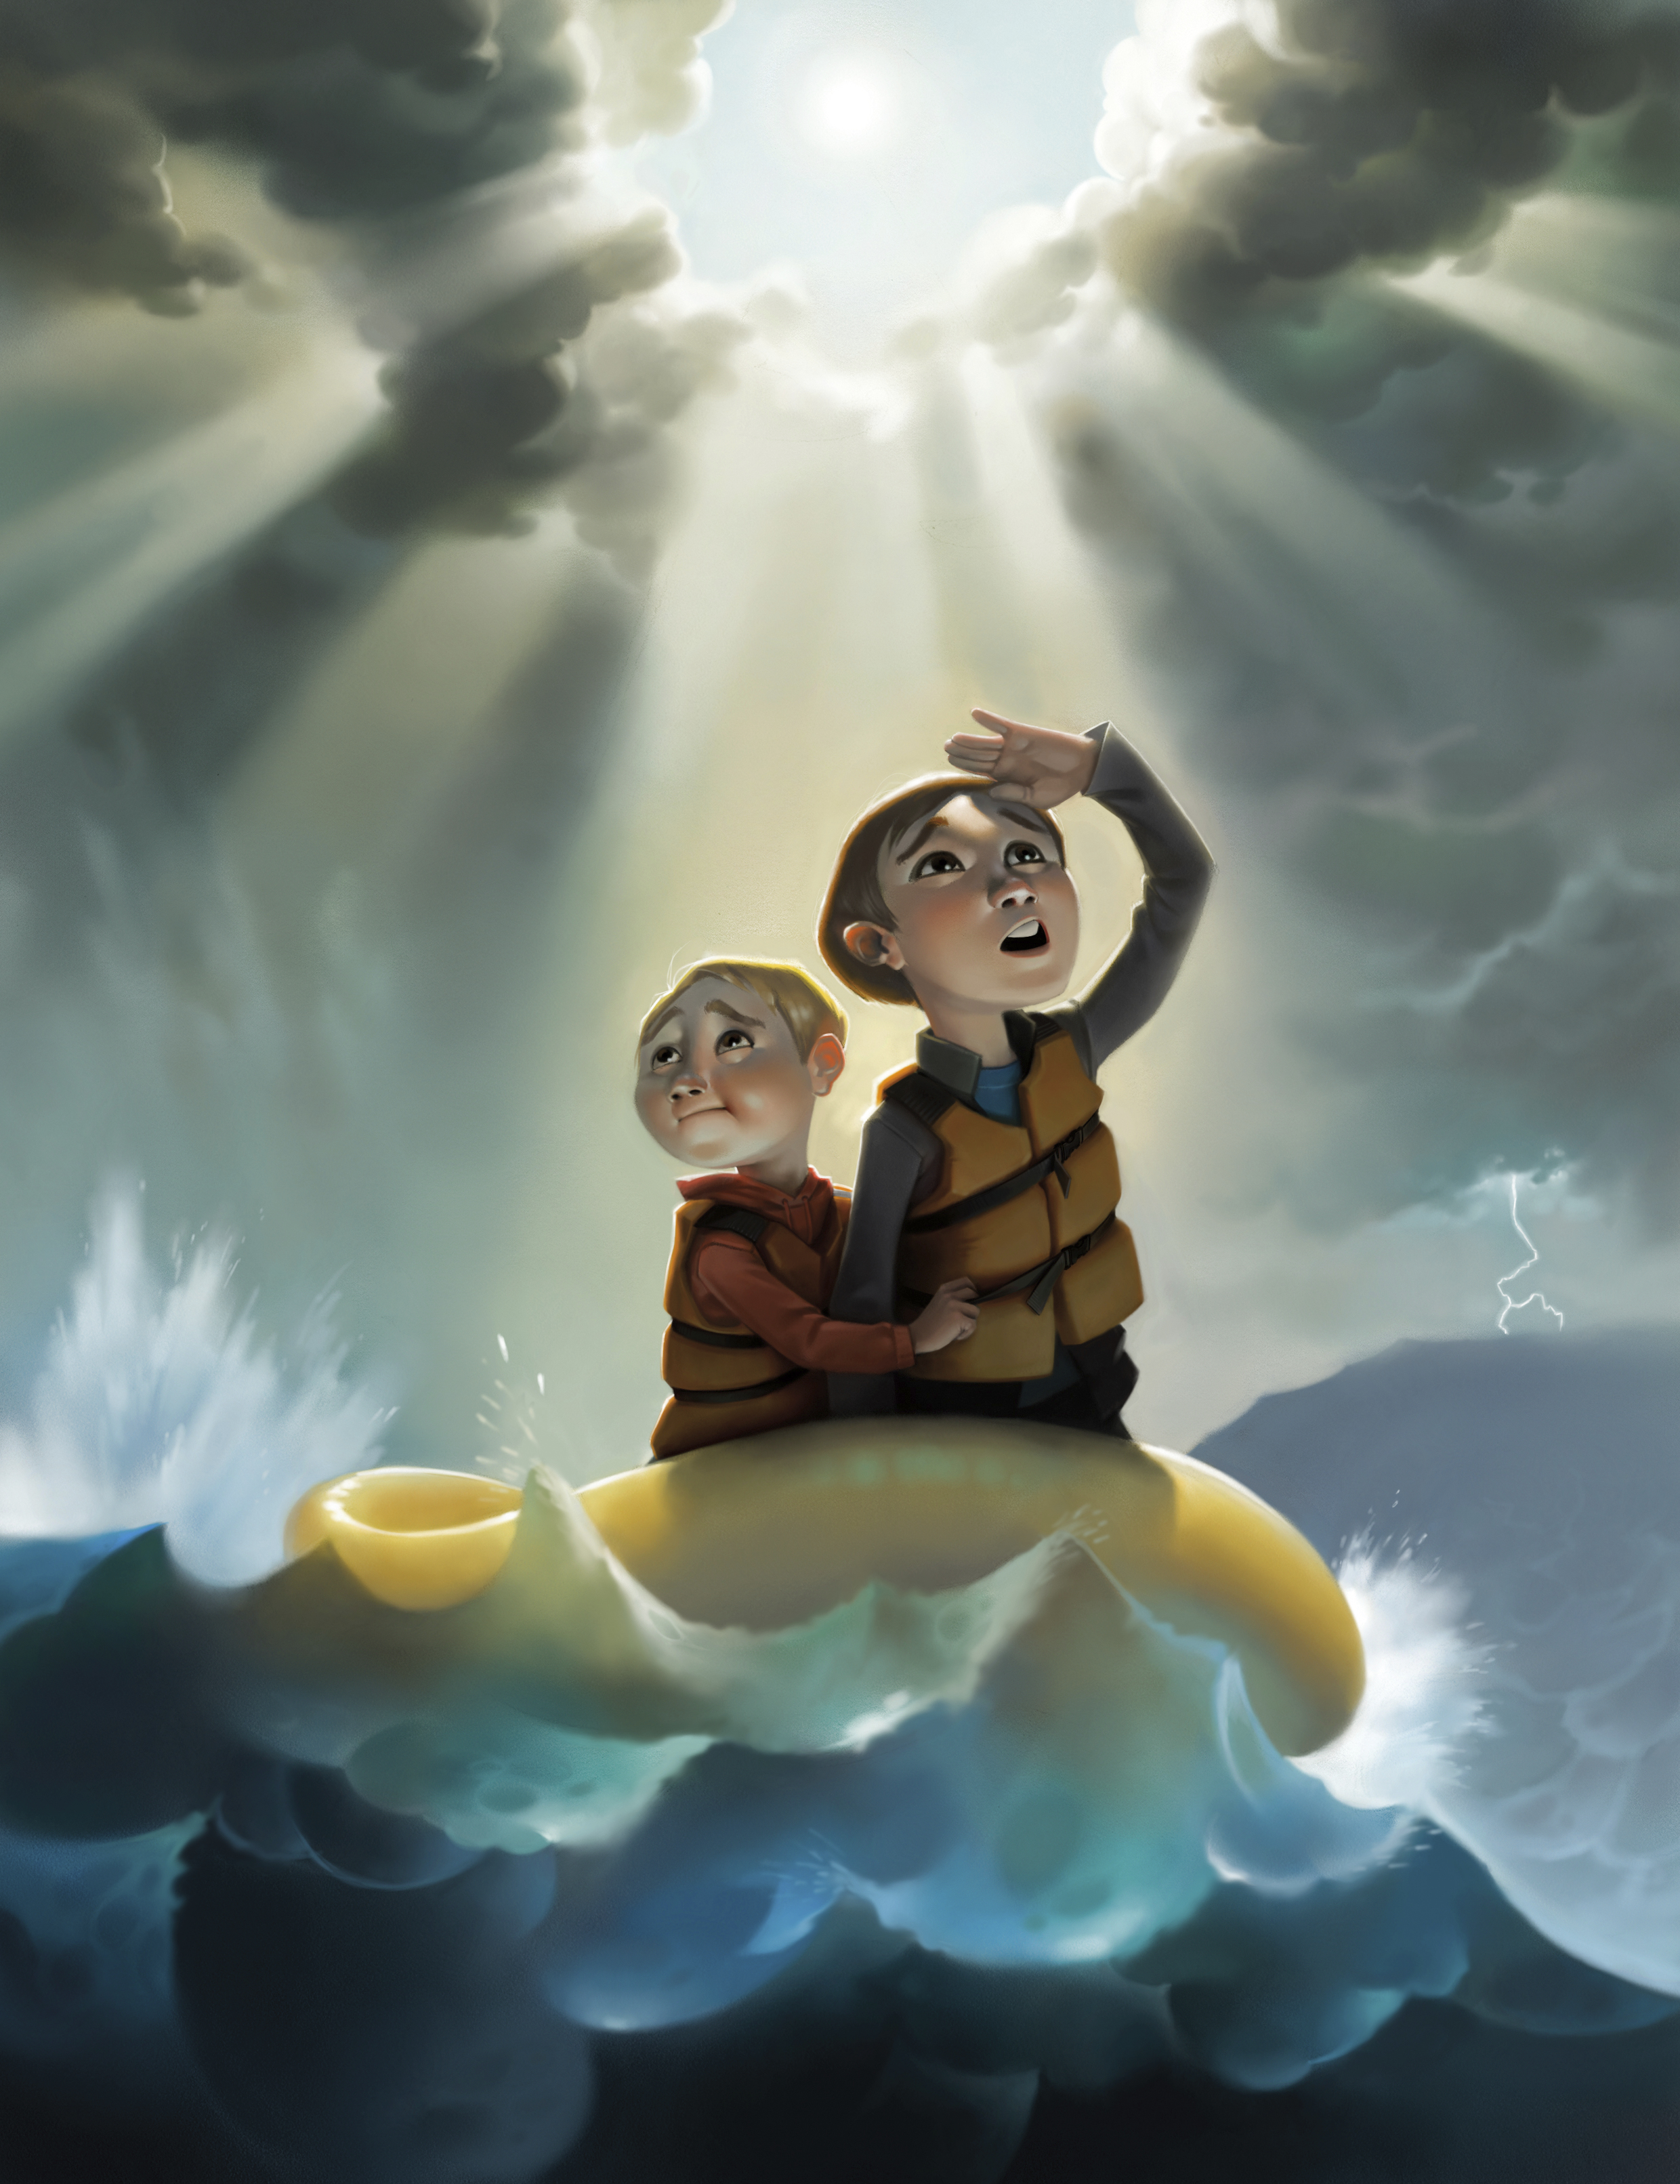 Two boys float in a raft during stormy weather on the sea.